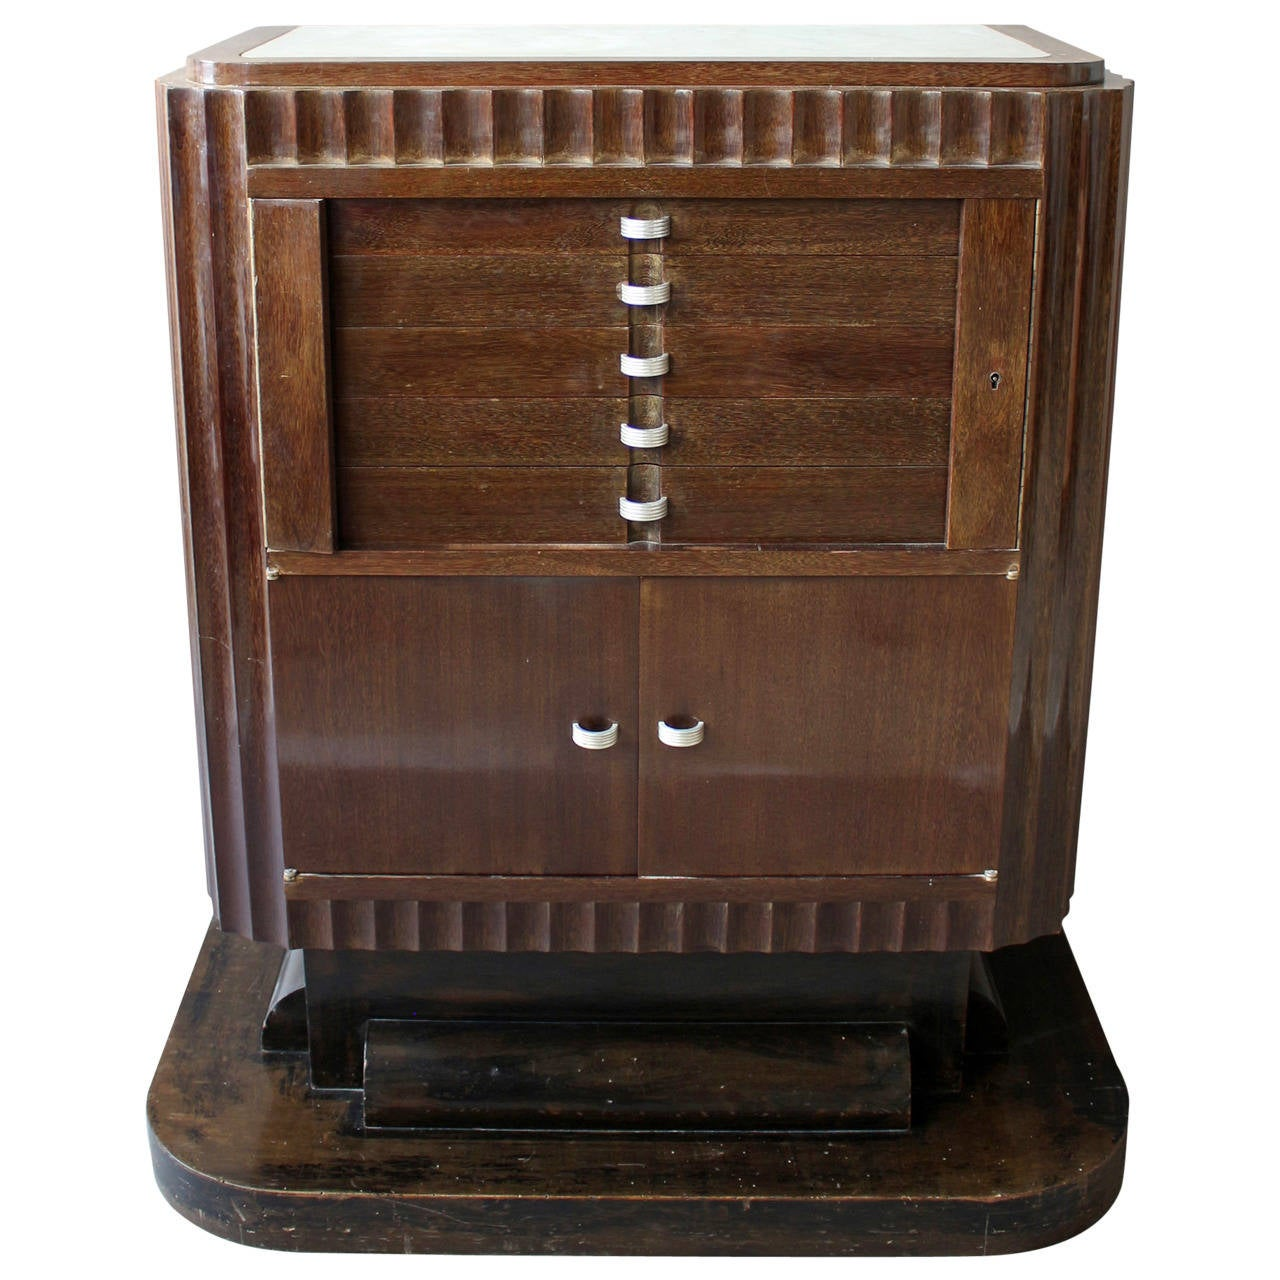 Genial A Fine French Art Deco Silverware Cabinet By Christian Krass For Sale